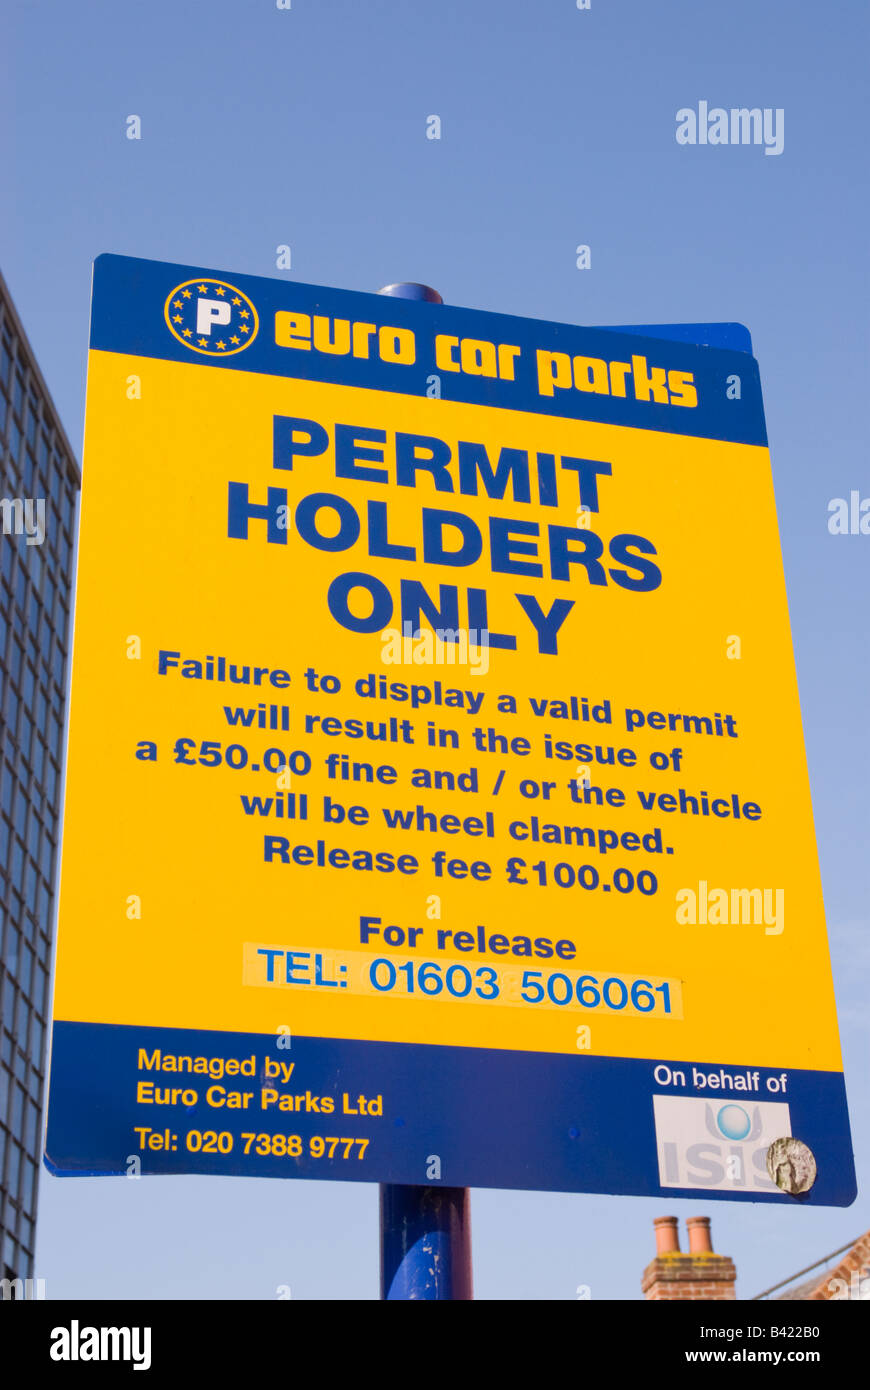 Euro Car Parks Stock Photos Euro Car Parks Stock Images Alamy